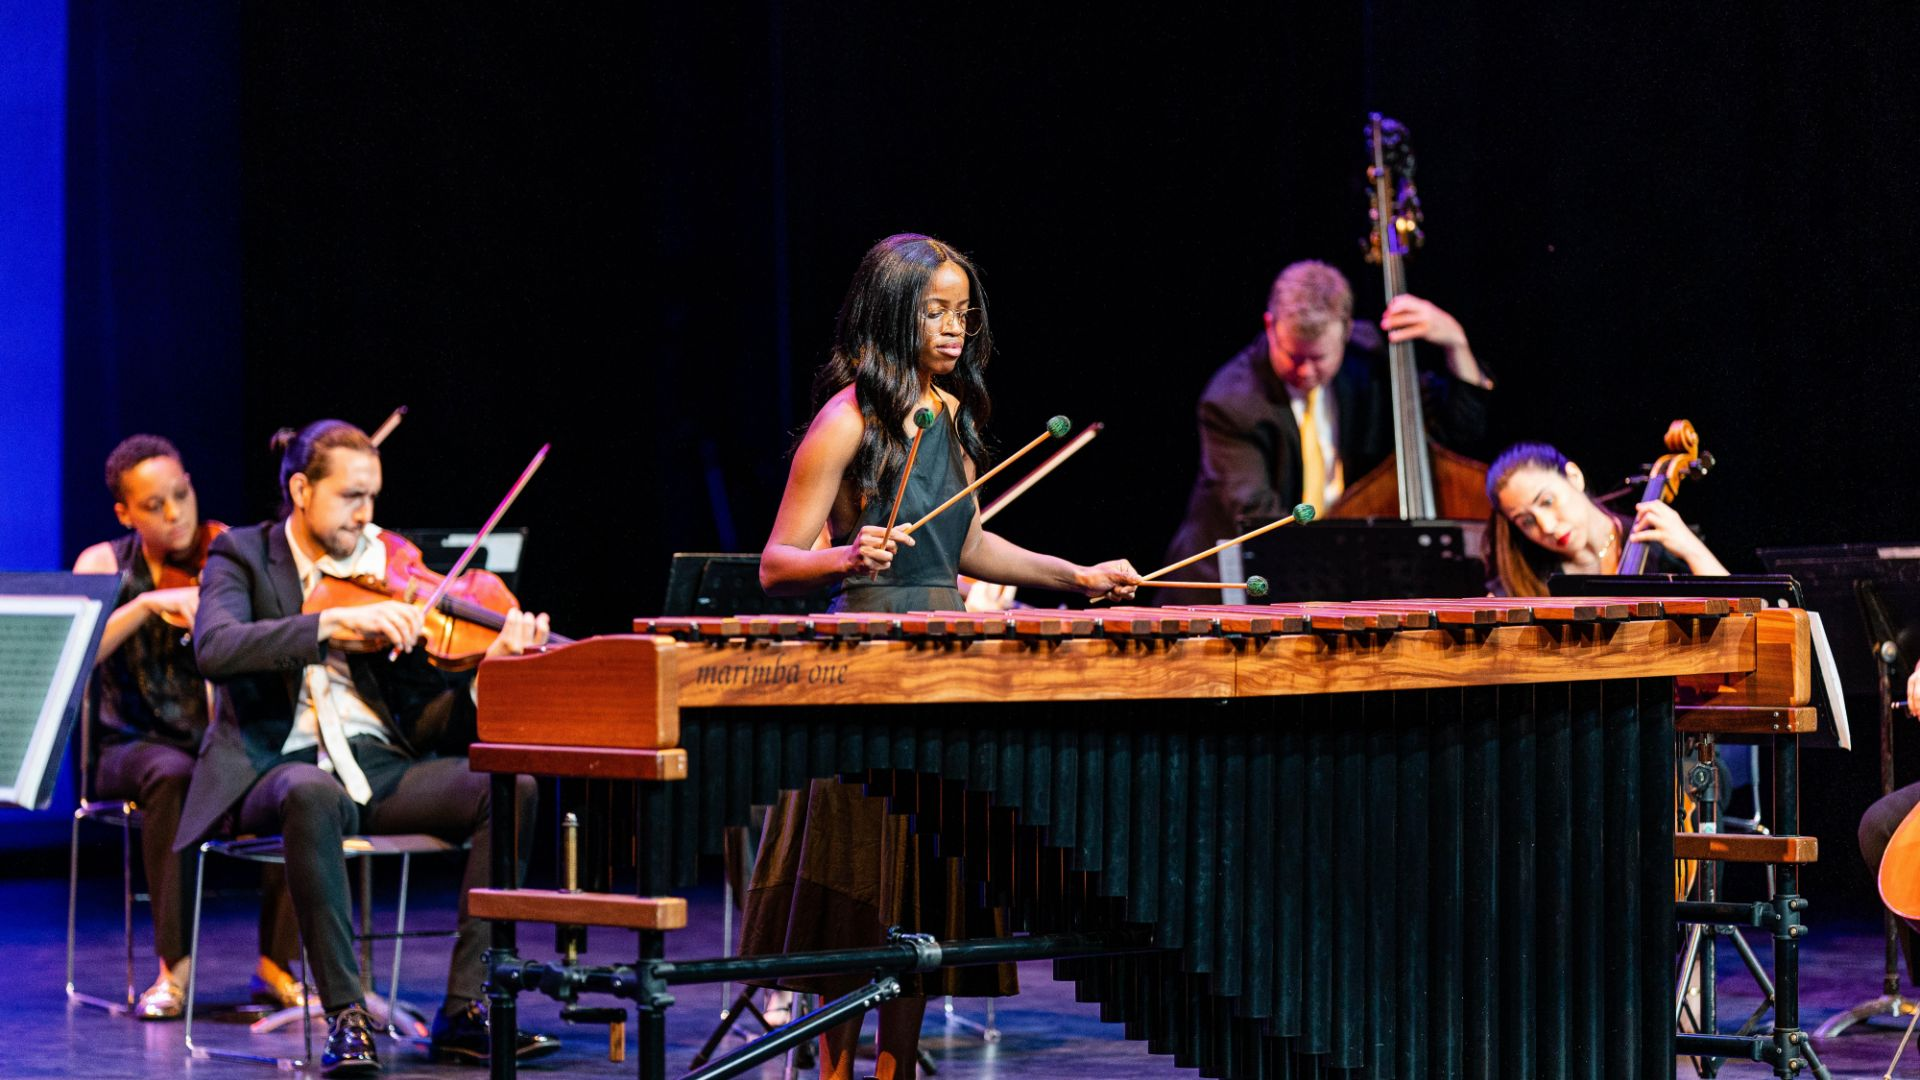 Low res 21 july 24 new york chatham PS21 orpheus chamber orchestra DSC6108 rosauro marimba britton rene collins 1 copy